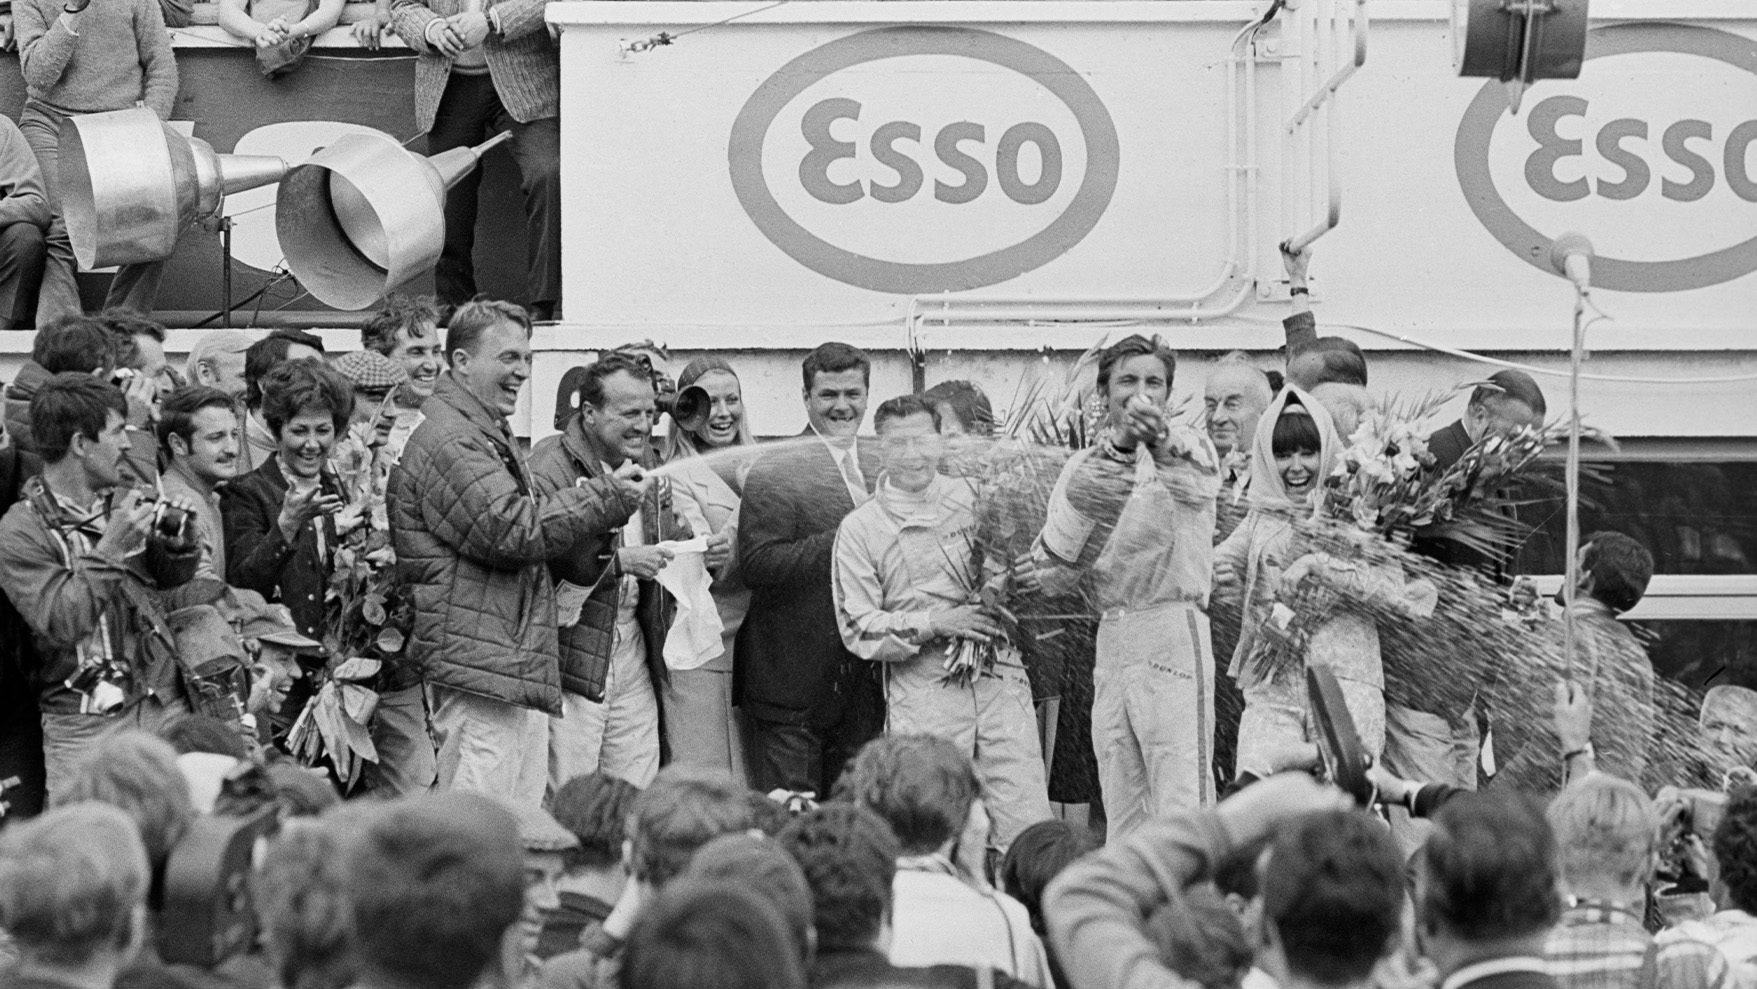 Dan Gurney and AJ Foyt spray champagne on the podium after the 1967 Le Mans 24 Hours